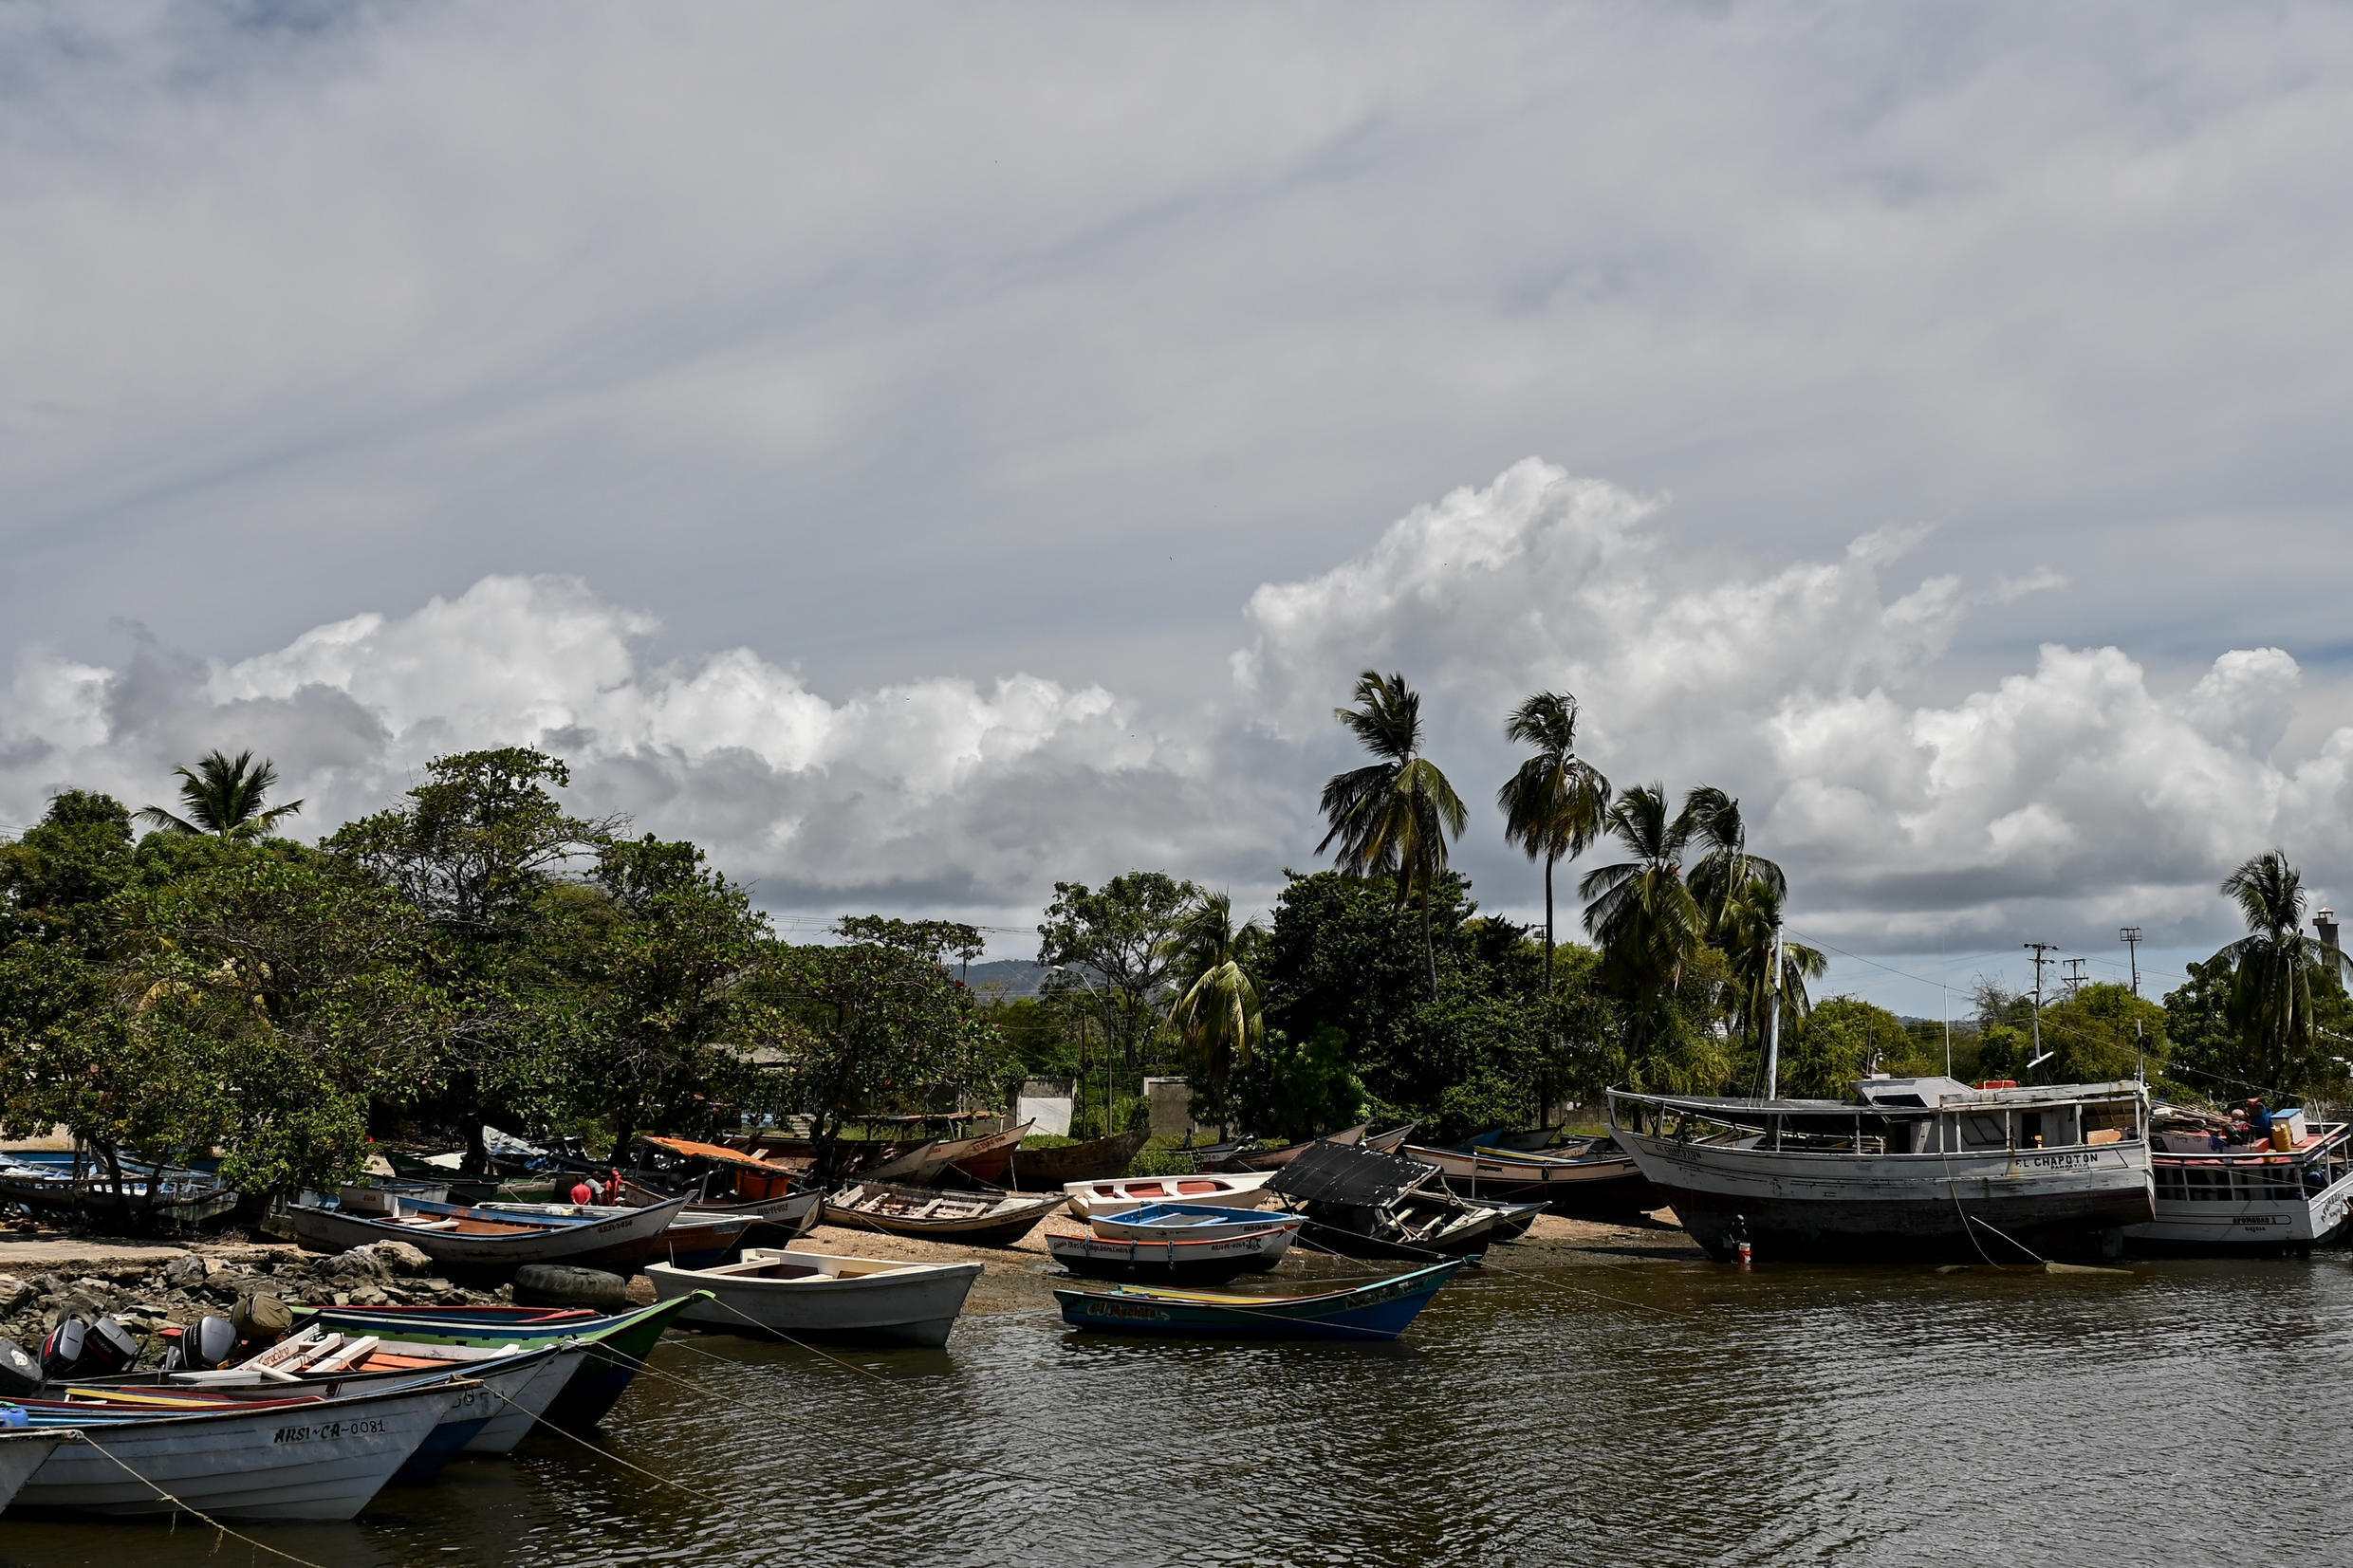 The port of Guiria in northeastern Venezuela from where many migrants try to make the perilous crossing to Trinidad and Tobago